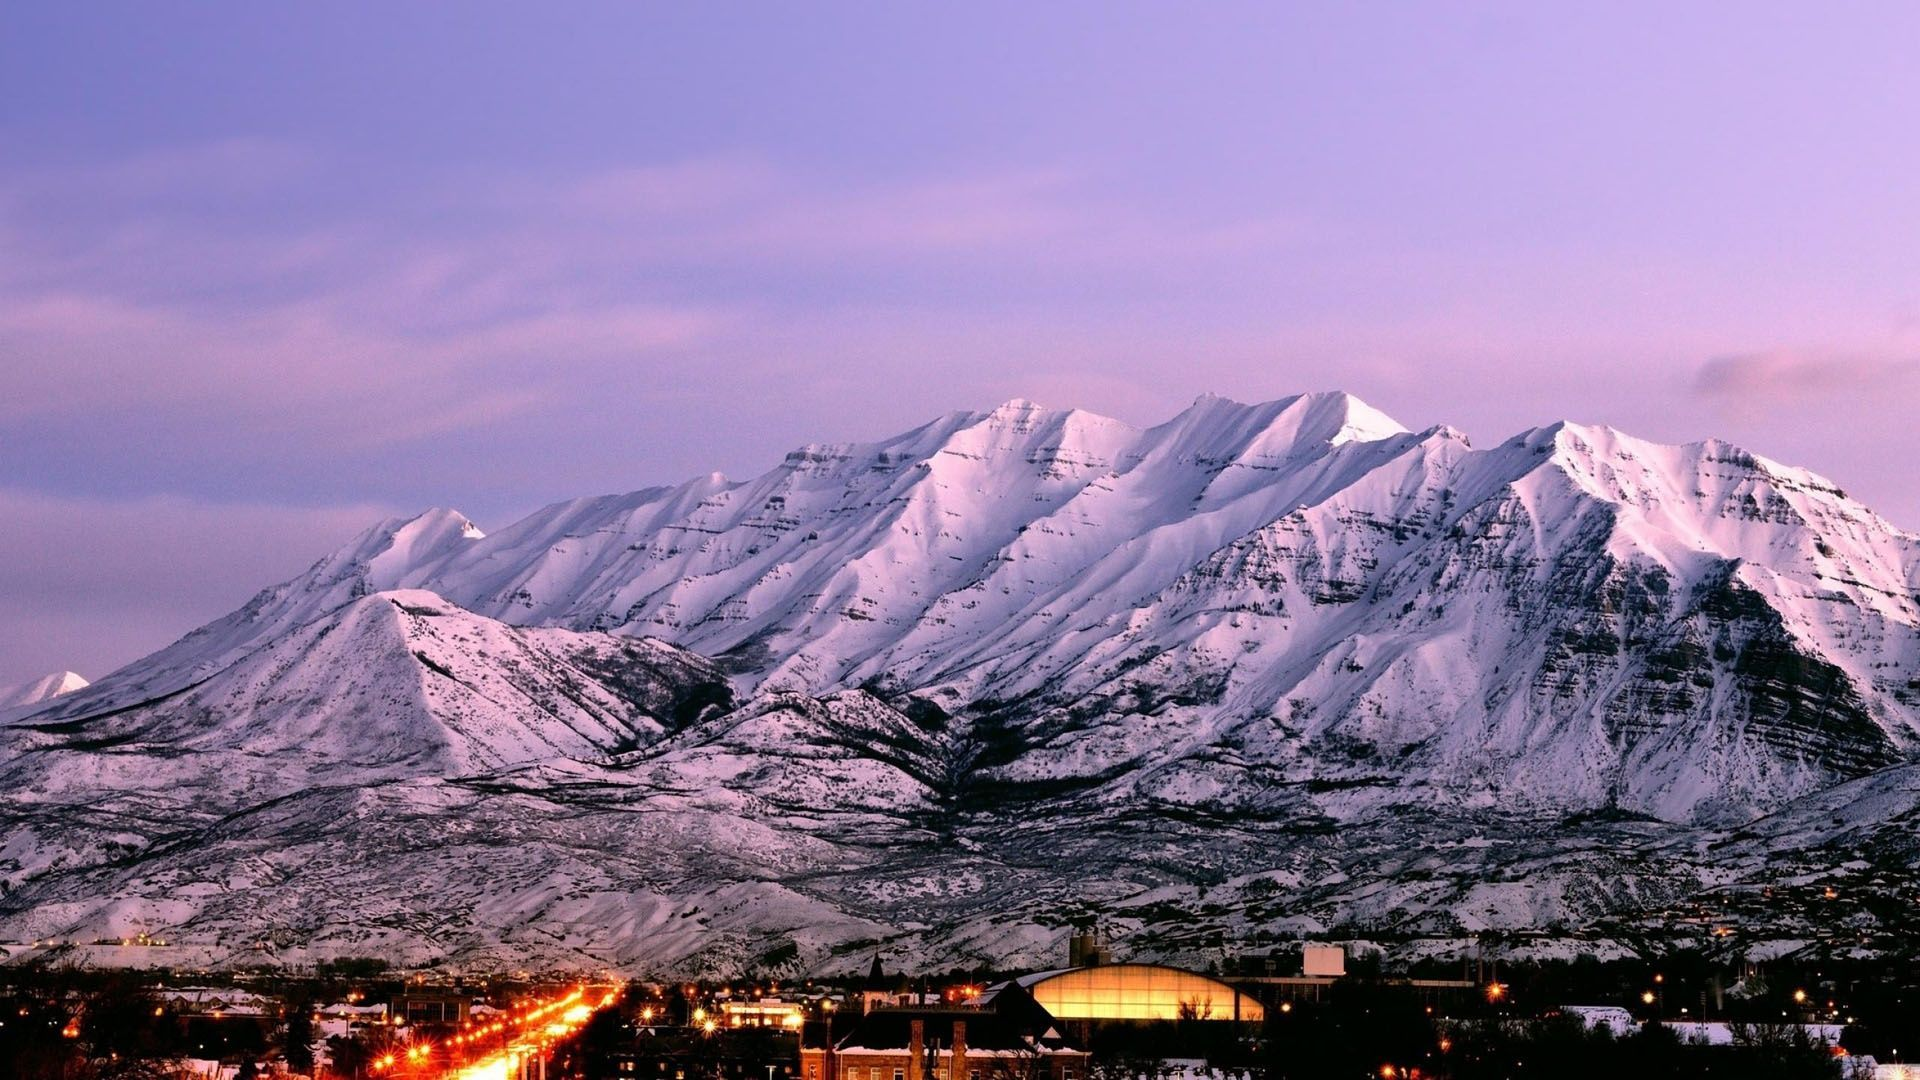 Mount Timpanogos is an 11749 foot mountain located along the 1920x1080